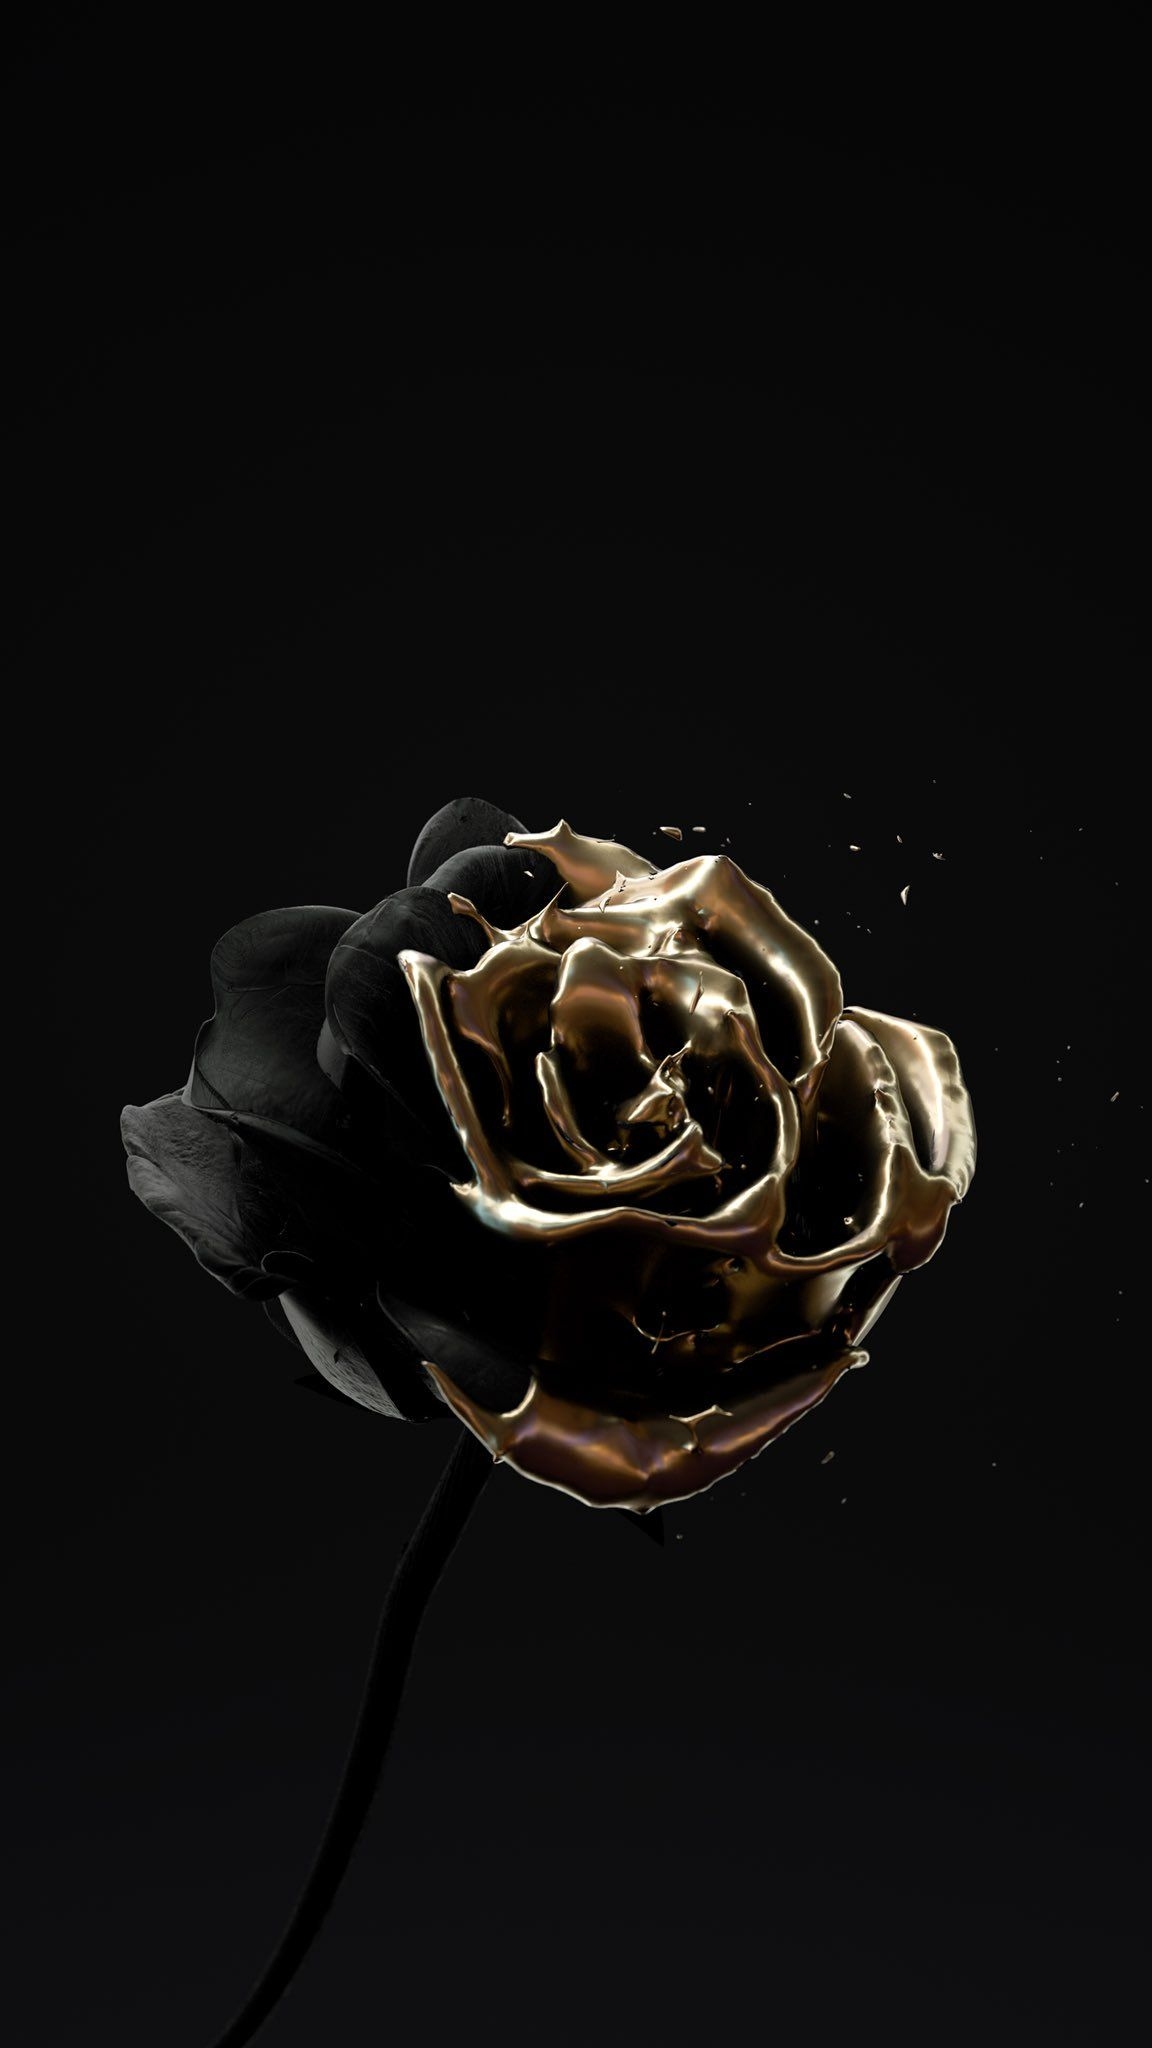 """Matthew Encina on Twitter: """"#RosesAreDead 🥀🖤💀 Volume 4. My ongoing design series exploring thoughts of life, love and death. #C4D #Xparticles #OctaneRender… https://t.co/2FBuLj6Z6J"""""""